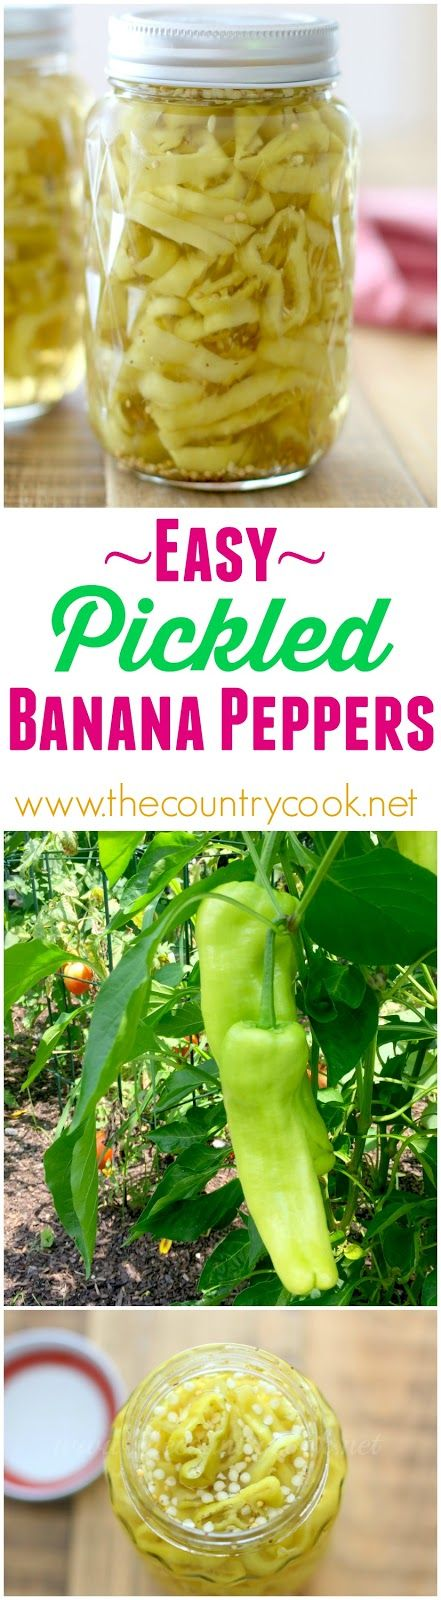 Easy Pickled Banana Peppers recipe from The Country Cook